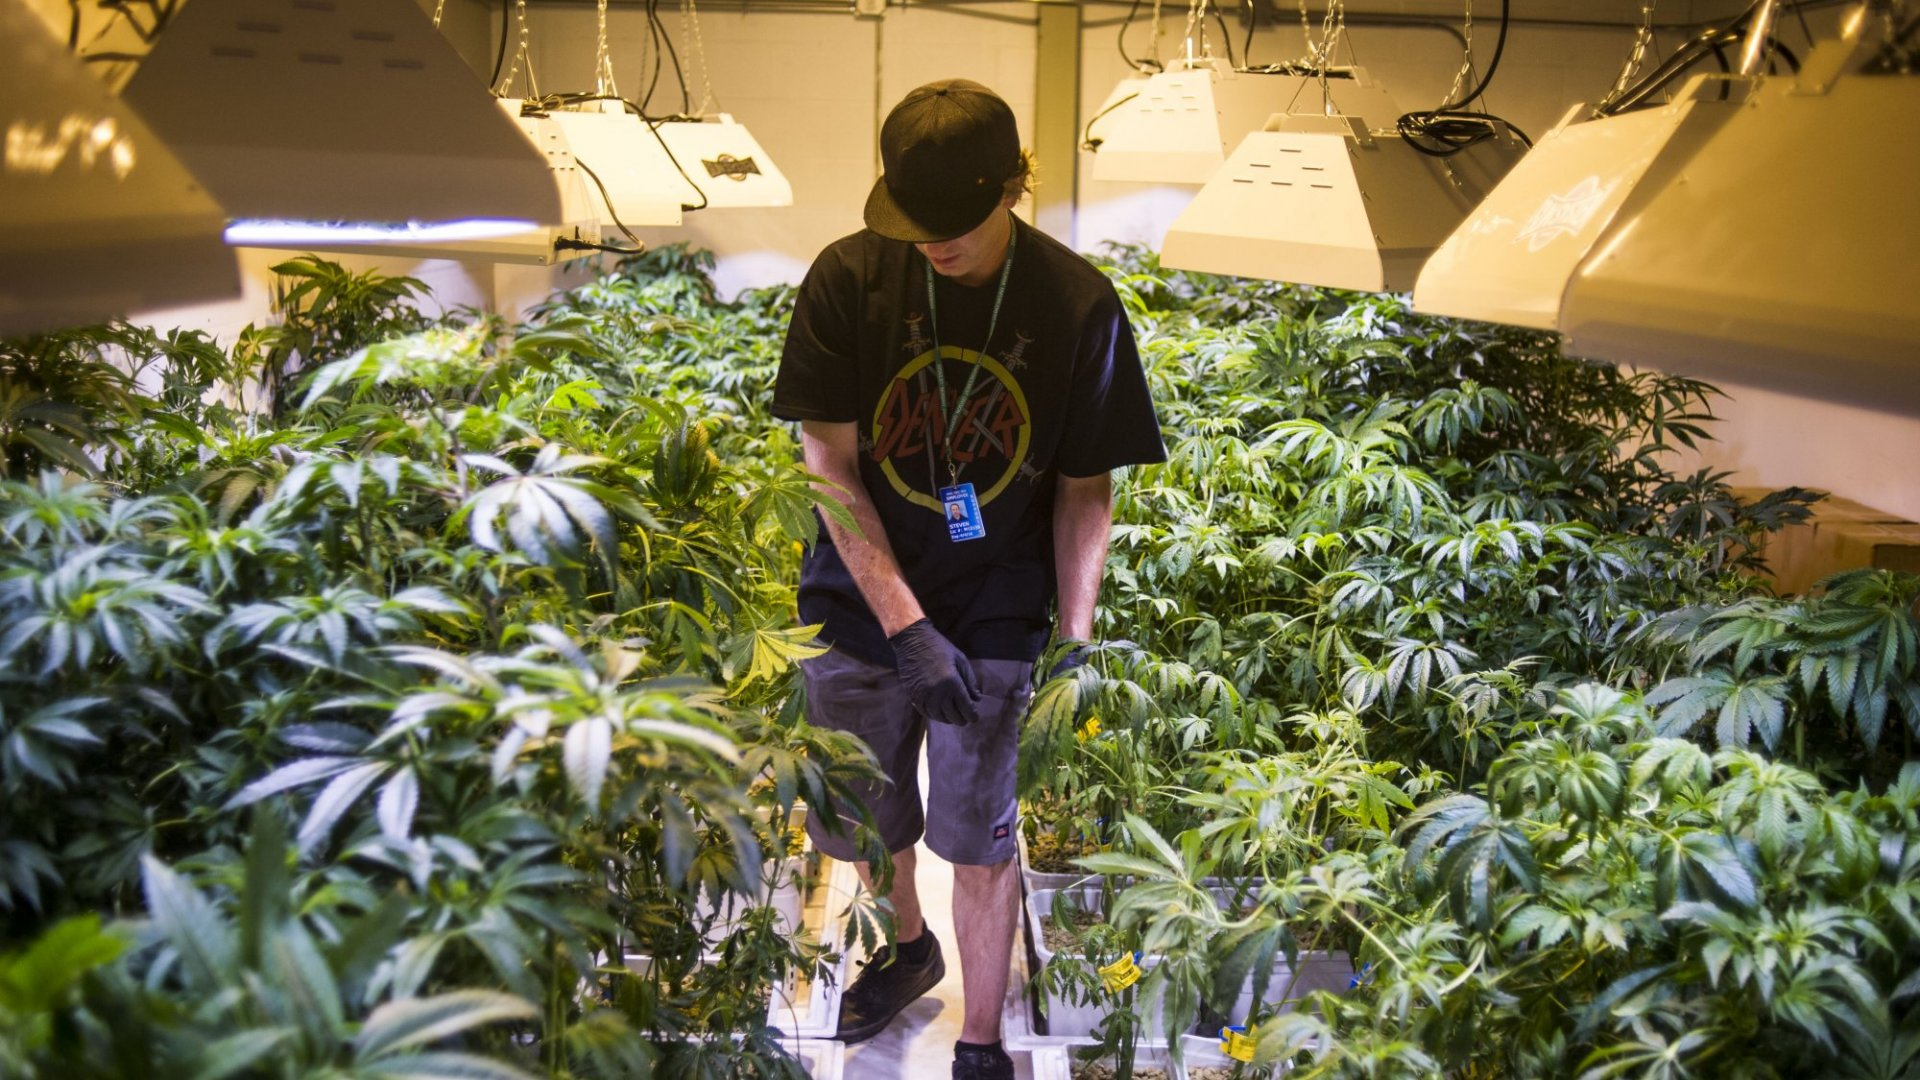 Colorado has built a billion-dollar industry in regulating the marijuana industry